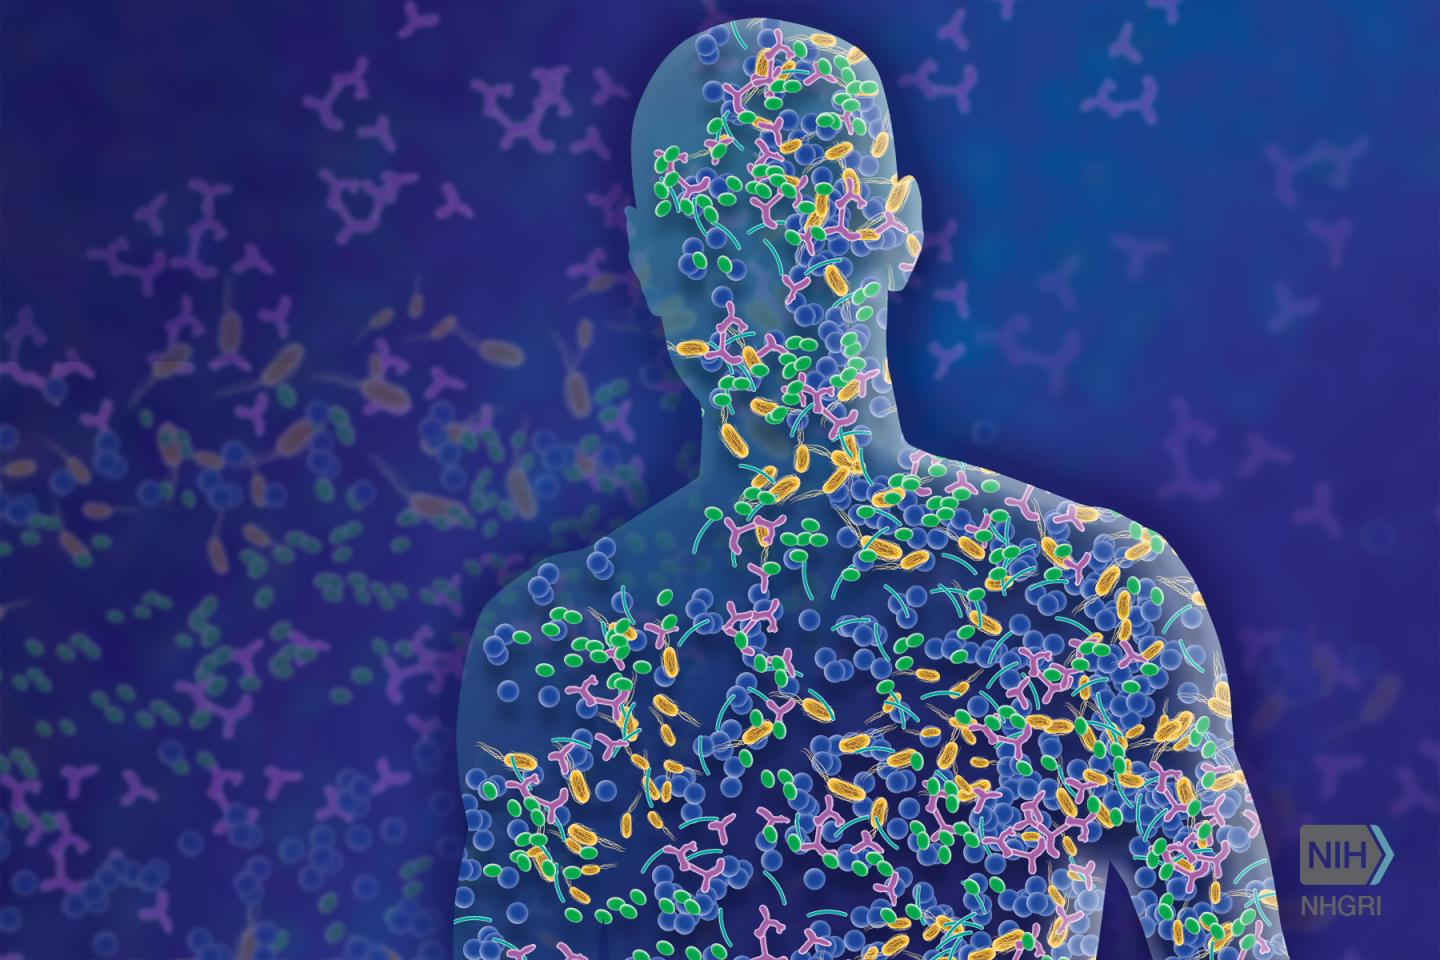 The microbiome is comprised of microorganisms that live in and on us and contribute to human health and disease.